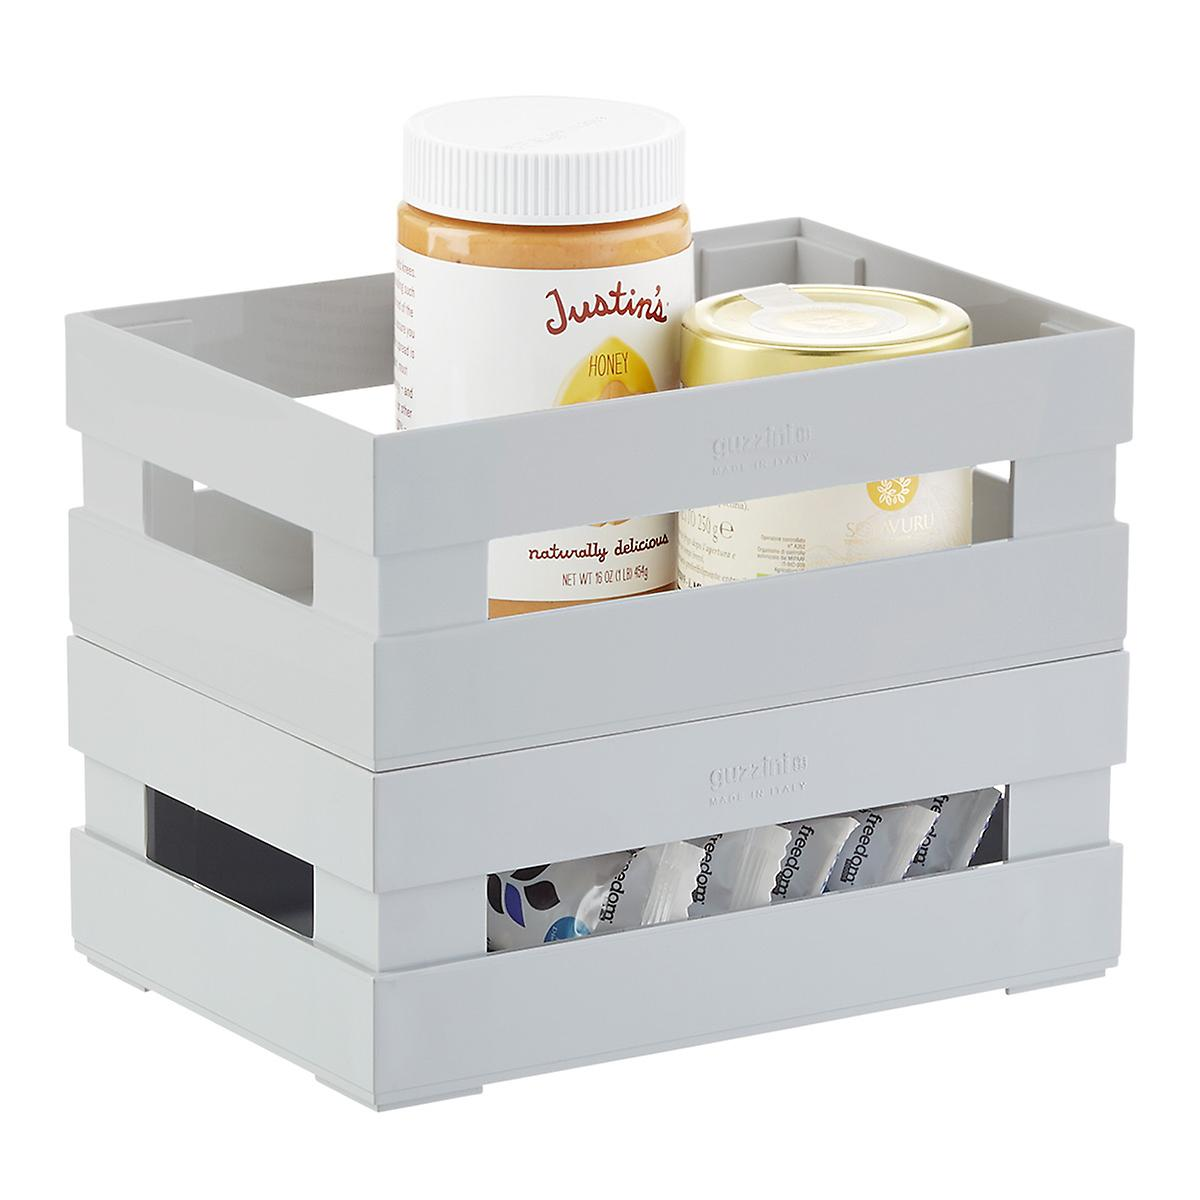 Kitchen Storage Bins: Guzzini Grey Italian Pantry Bins